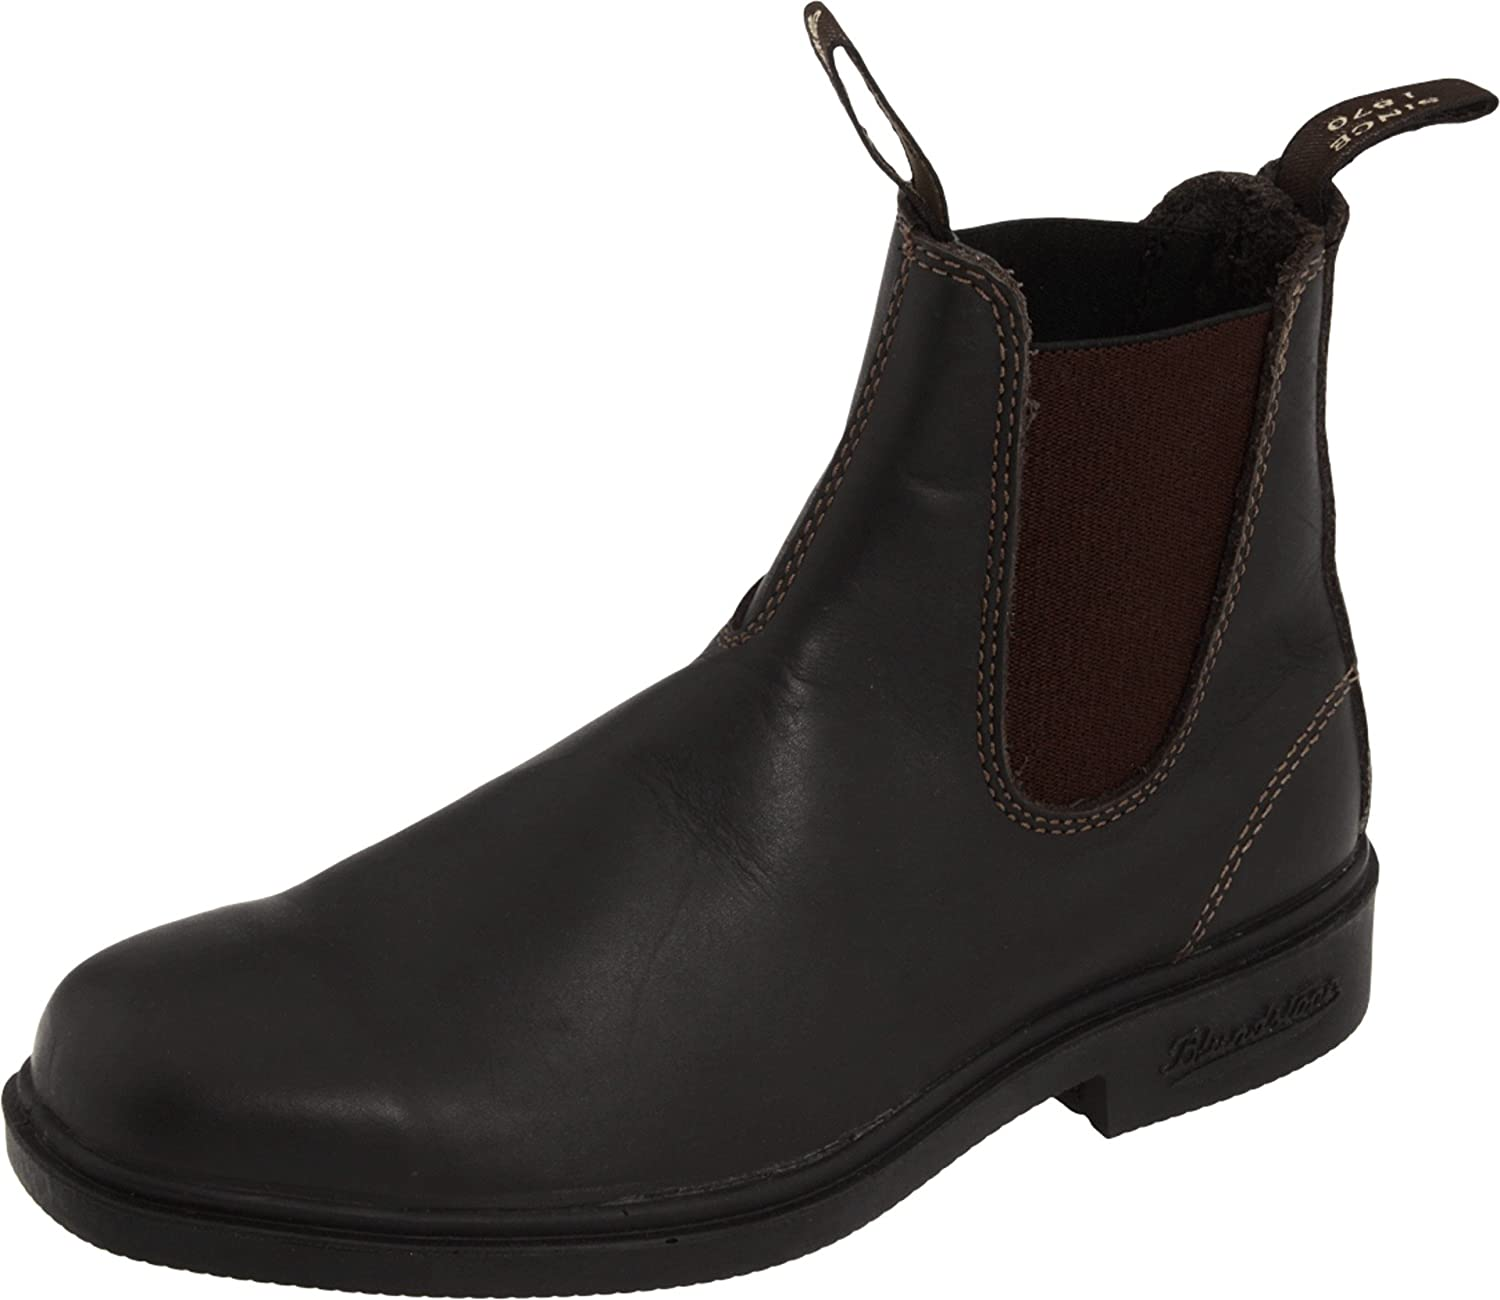 Blundstone Unisex Dress Series B004DP7BDC 7 AU wide / 8 US wide|Stout Brown